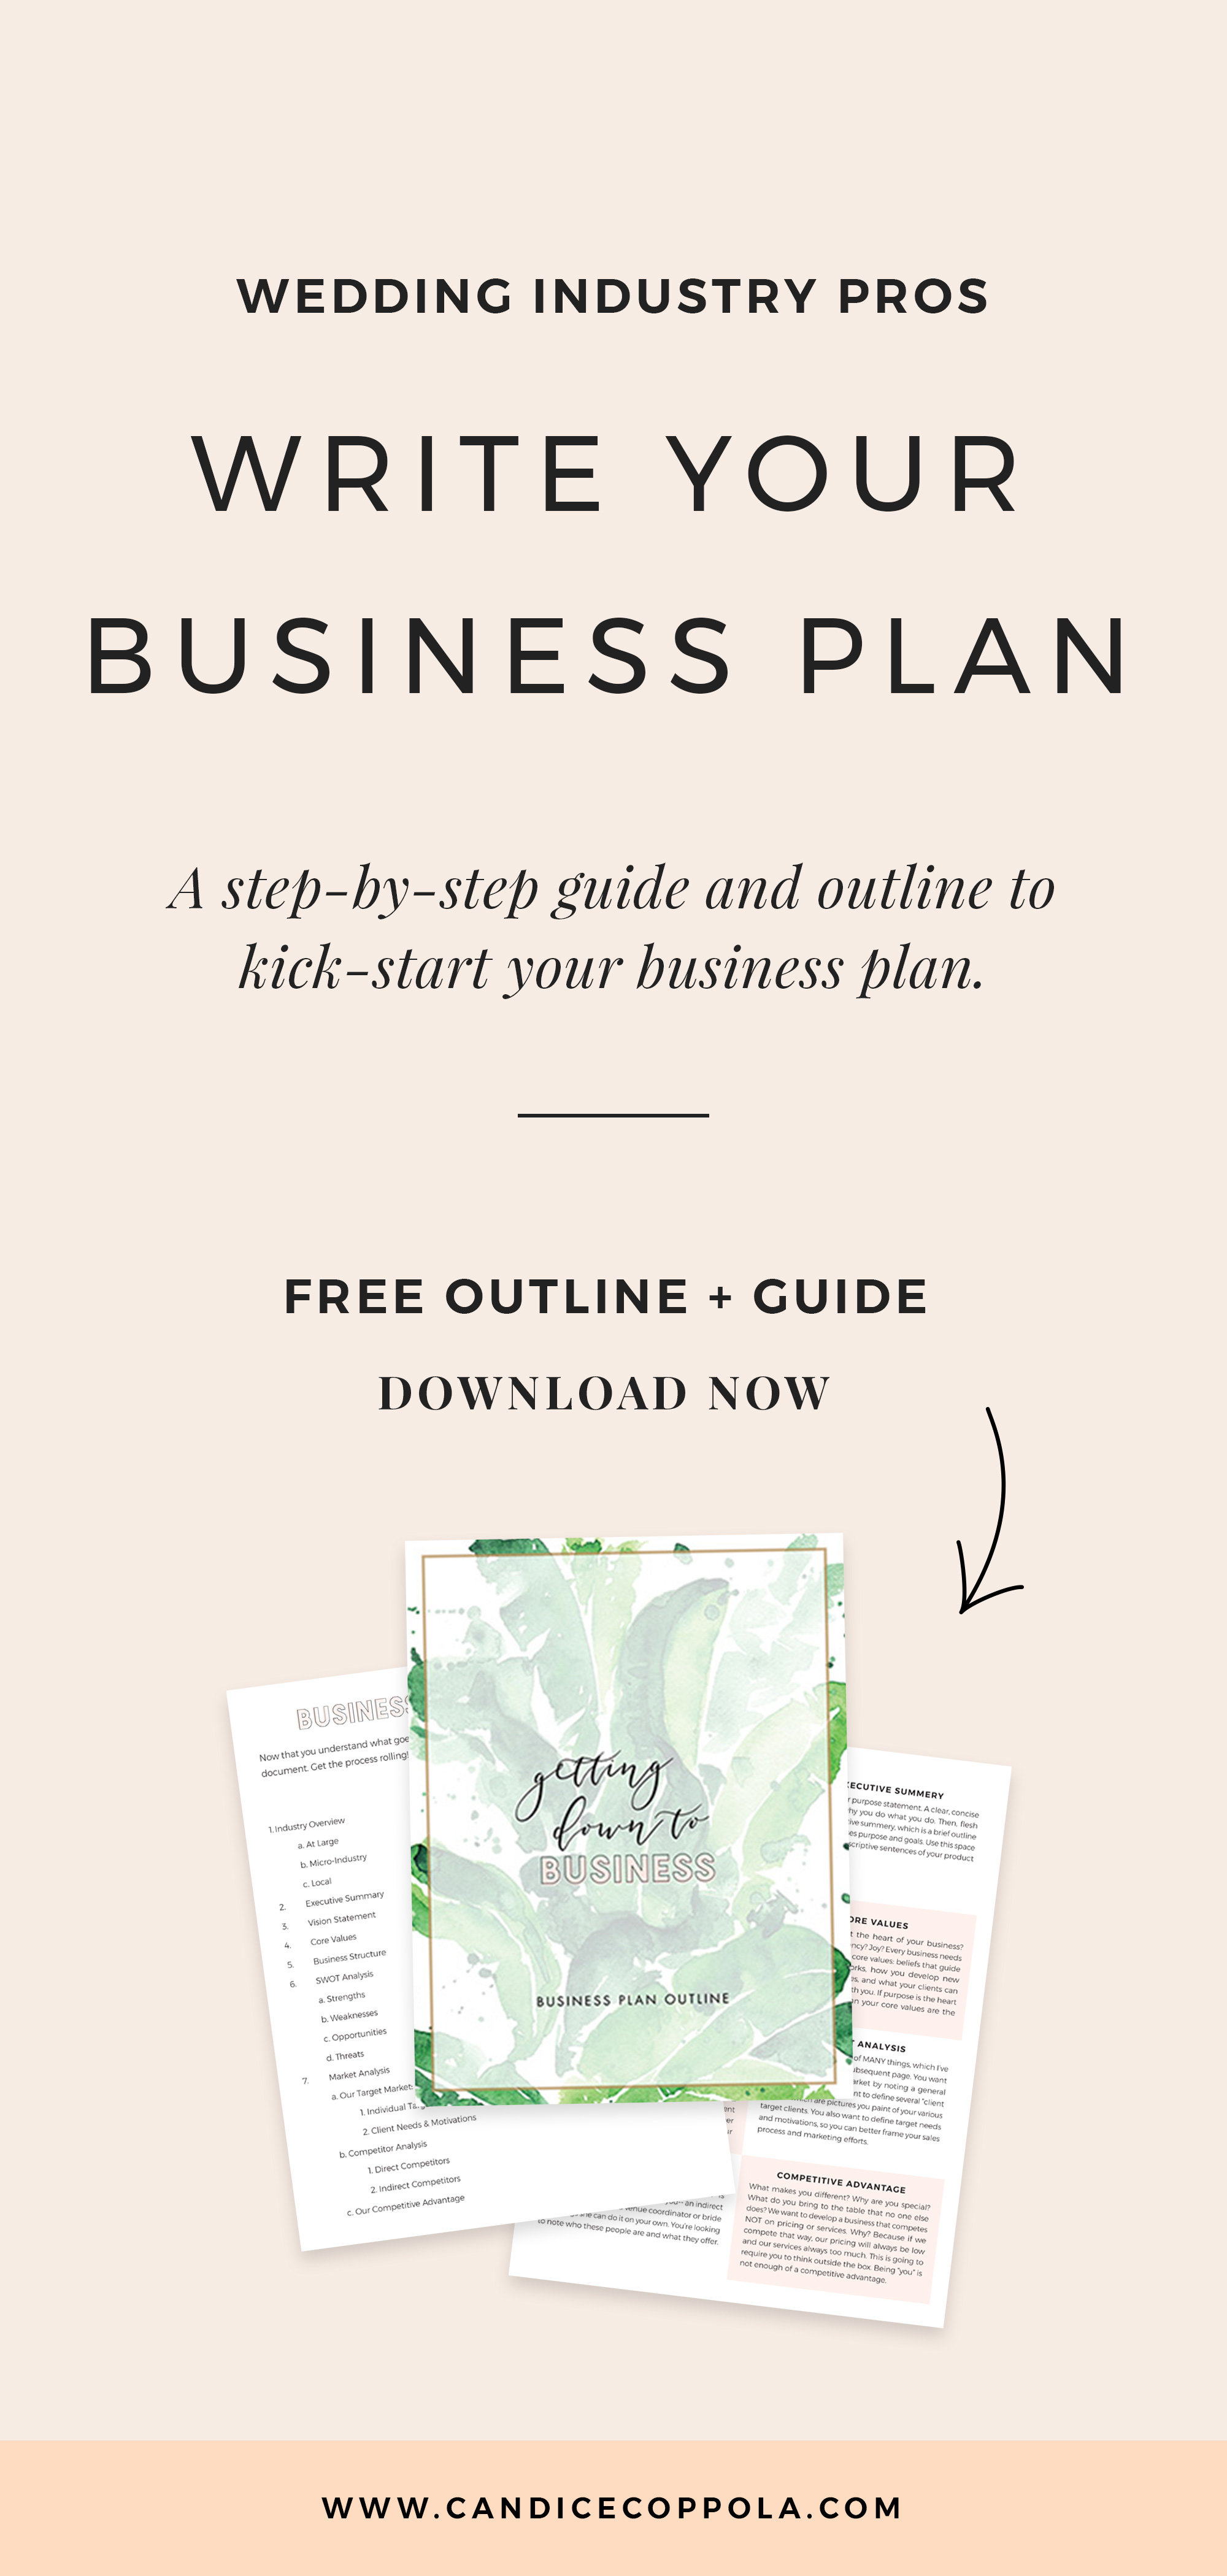 Free wedding planner business plan + guide.